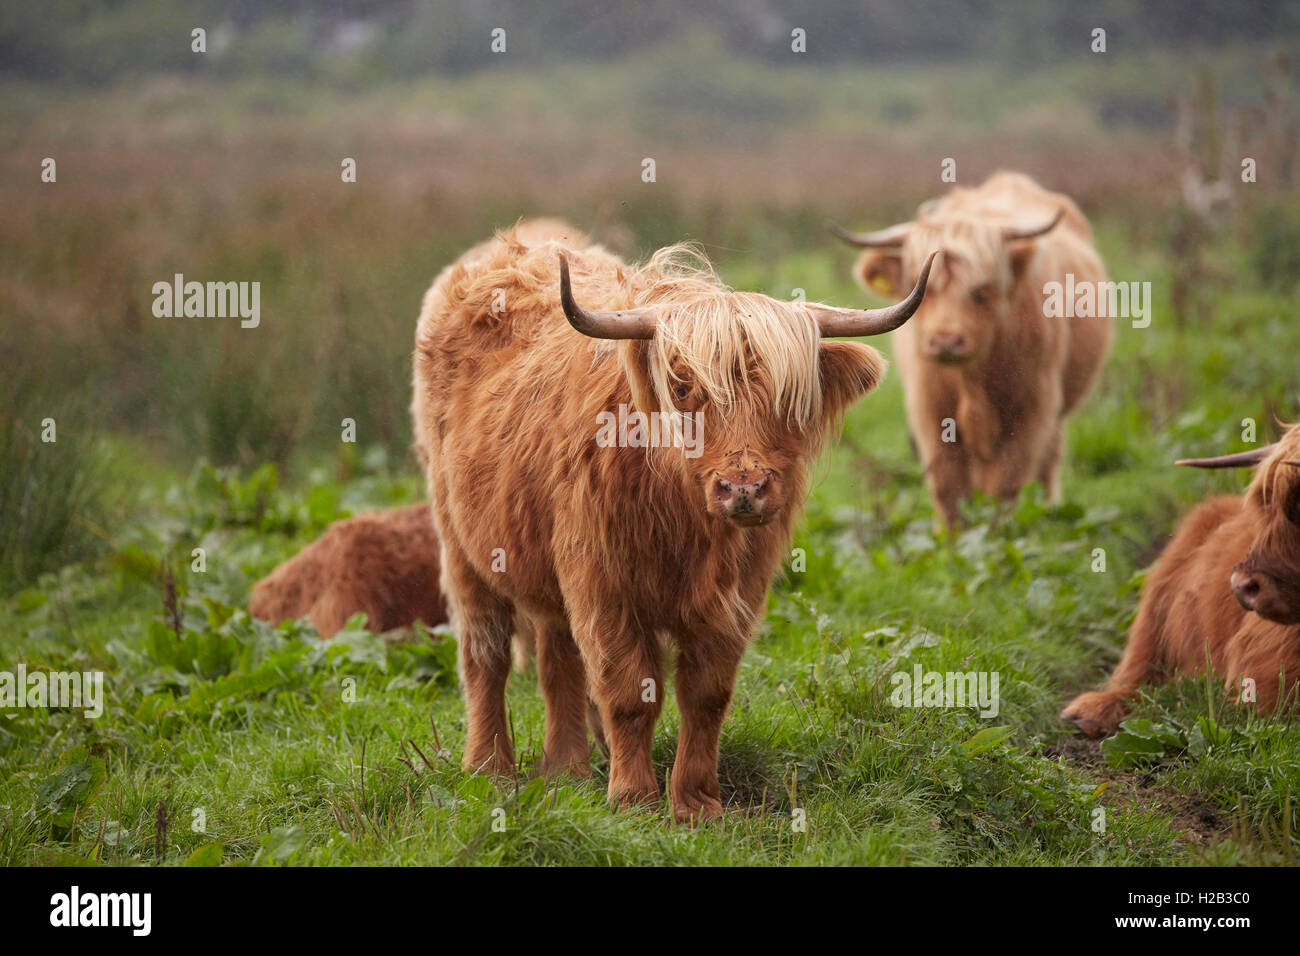 Highland cattle at Alverstone on the Isle of Wight - Stock Image